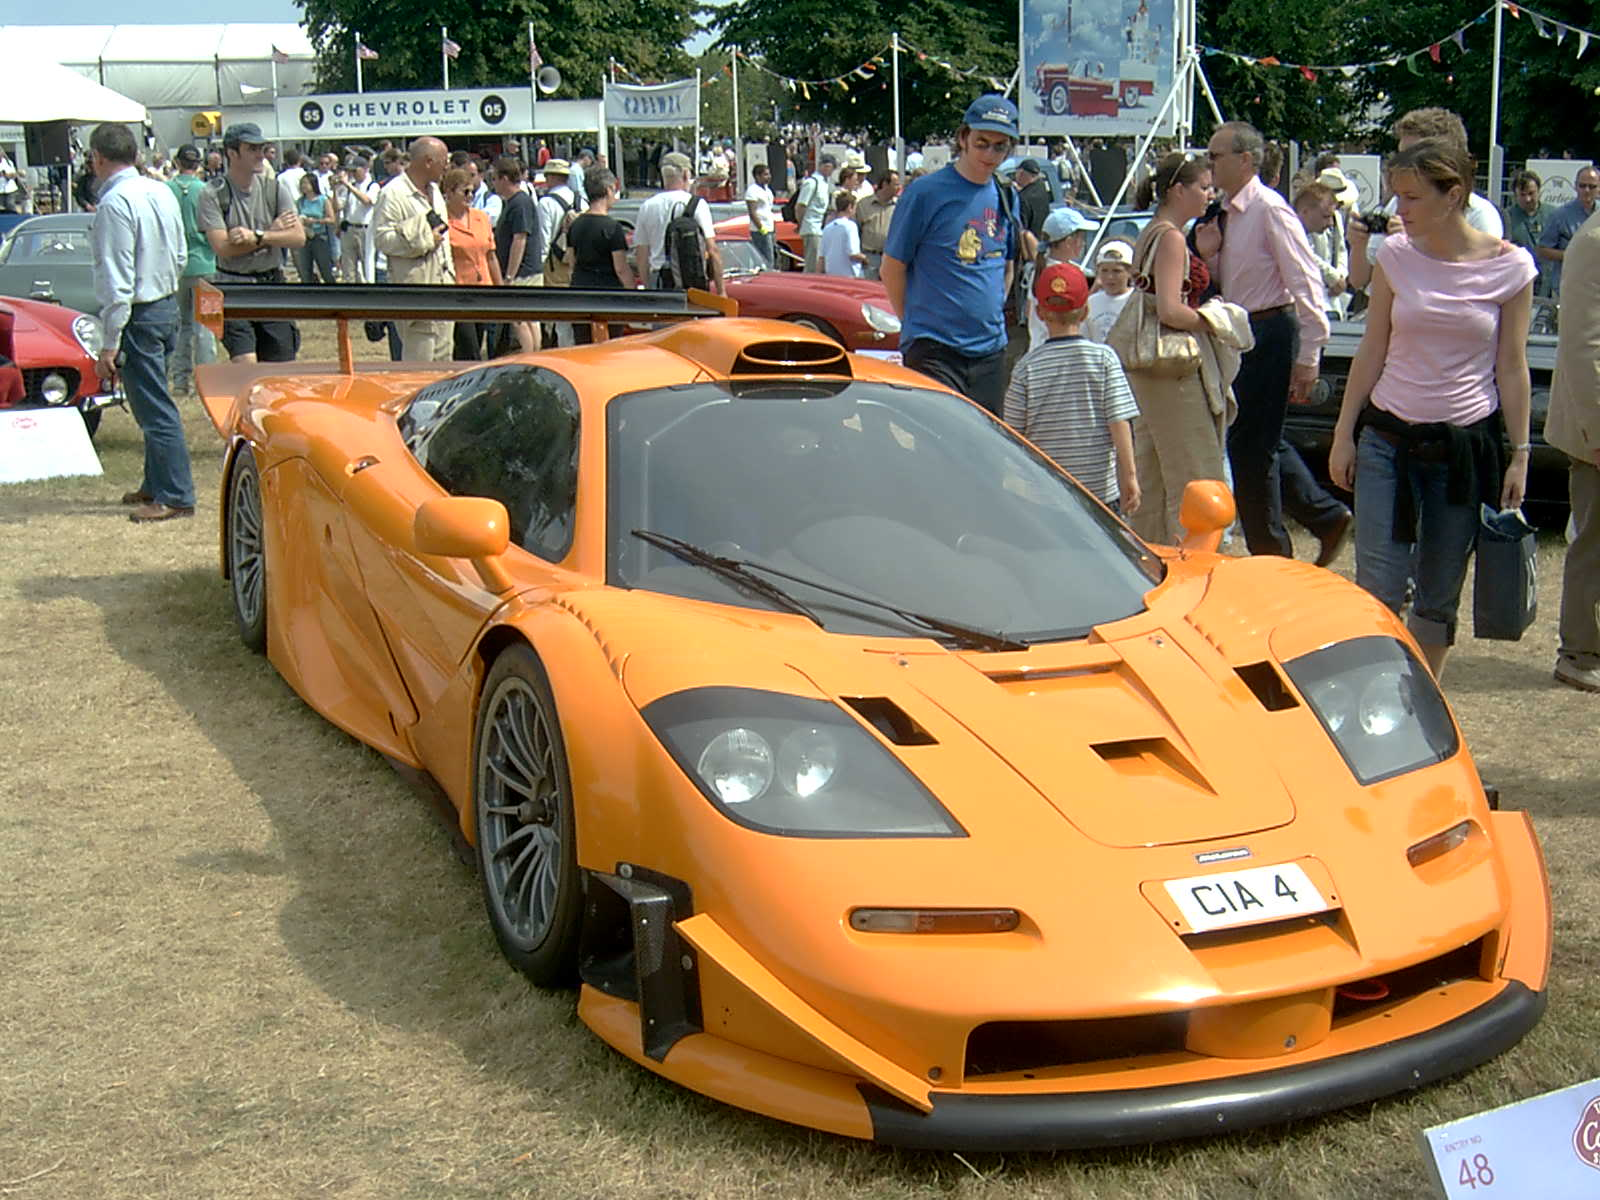 出典:http://www.luxury4play.com/mclaren/42351-anyone-here-know-anything-about-mclaren-f1-16.html